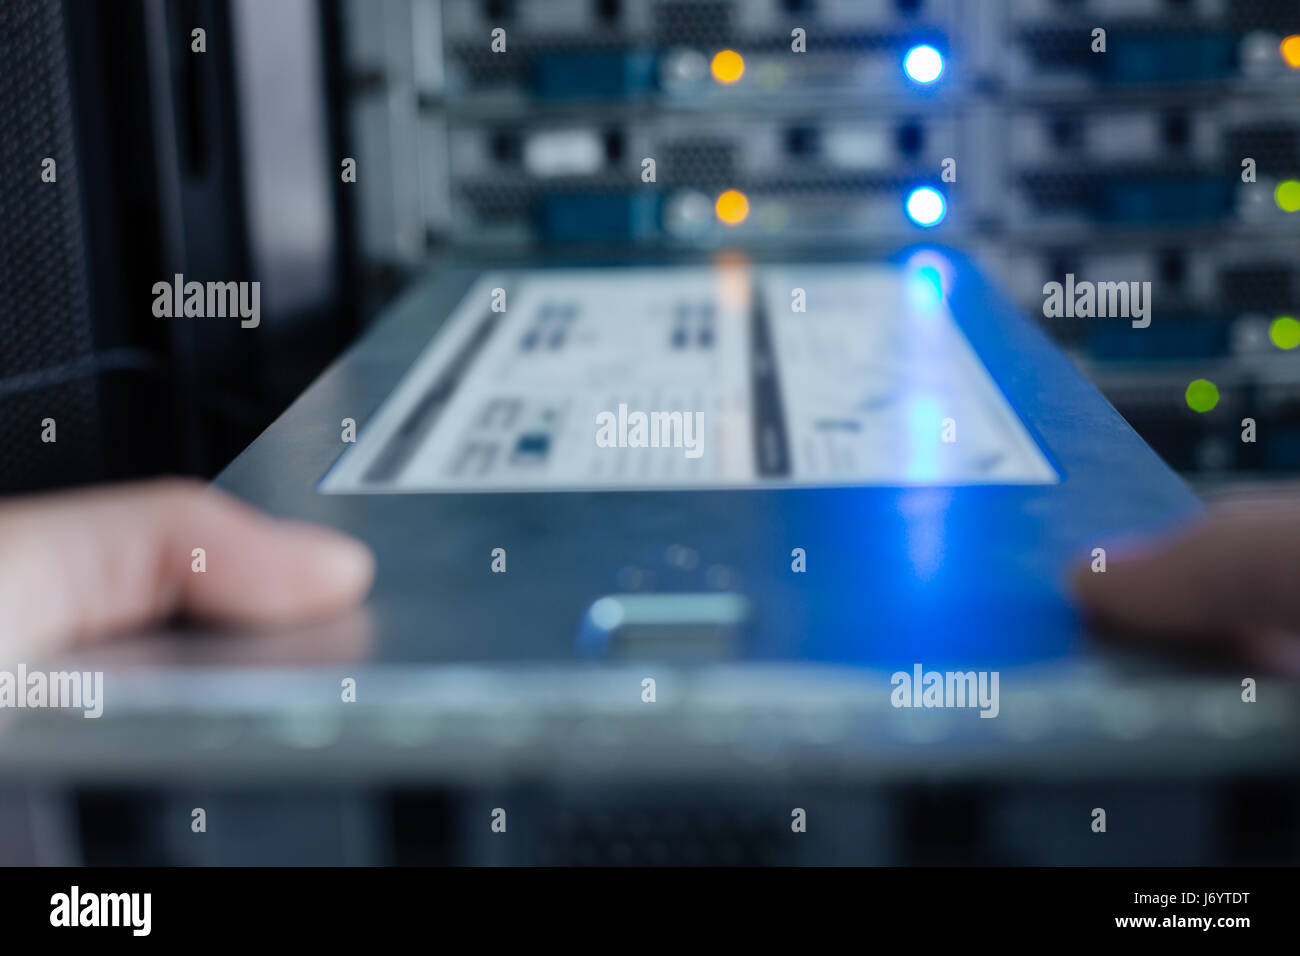 Blurred image of a rack server - Stock Image